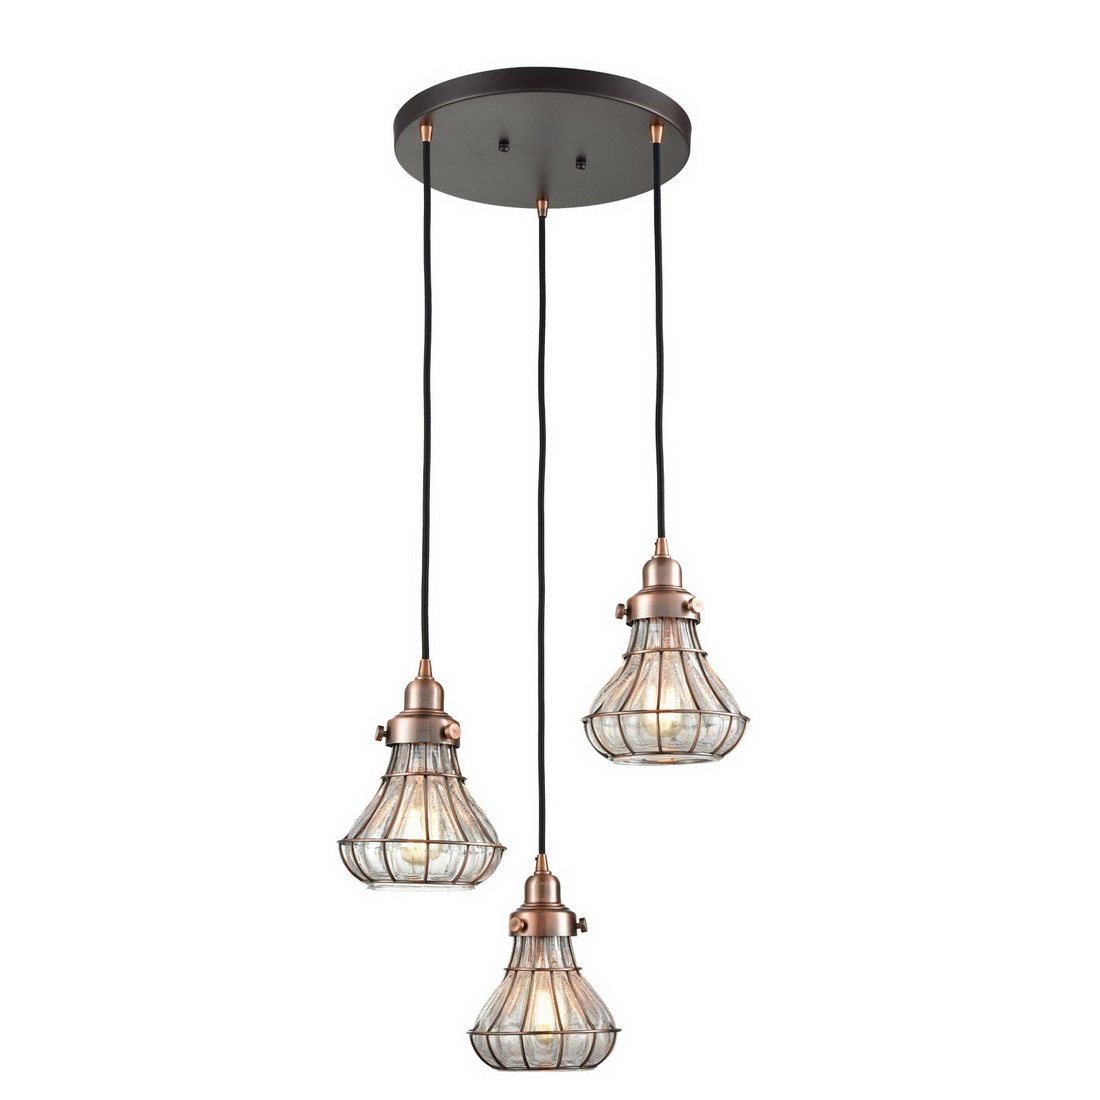 AXILAND Industrial 3-Light Cracked Glass Wire Hanging Pendant Chandeliers, Red Antique Copper